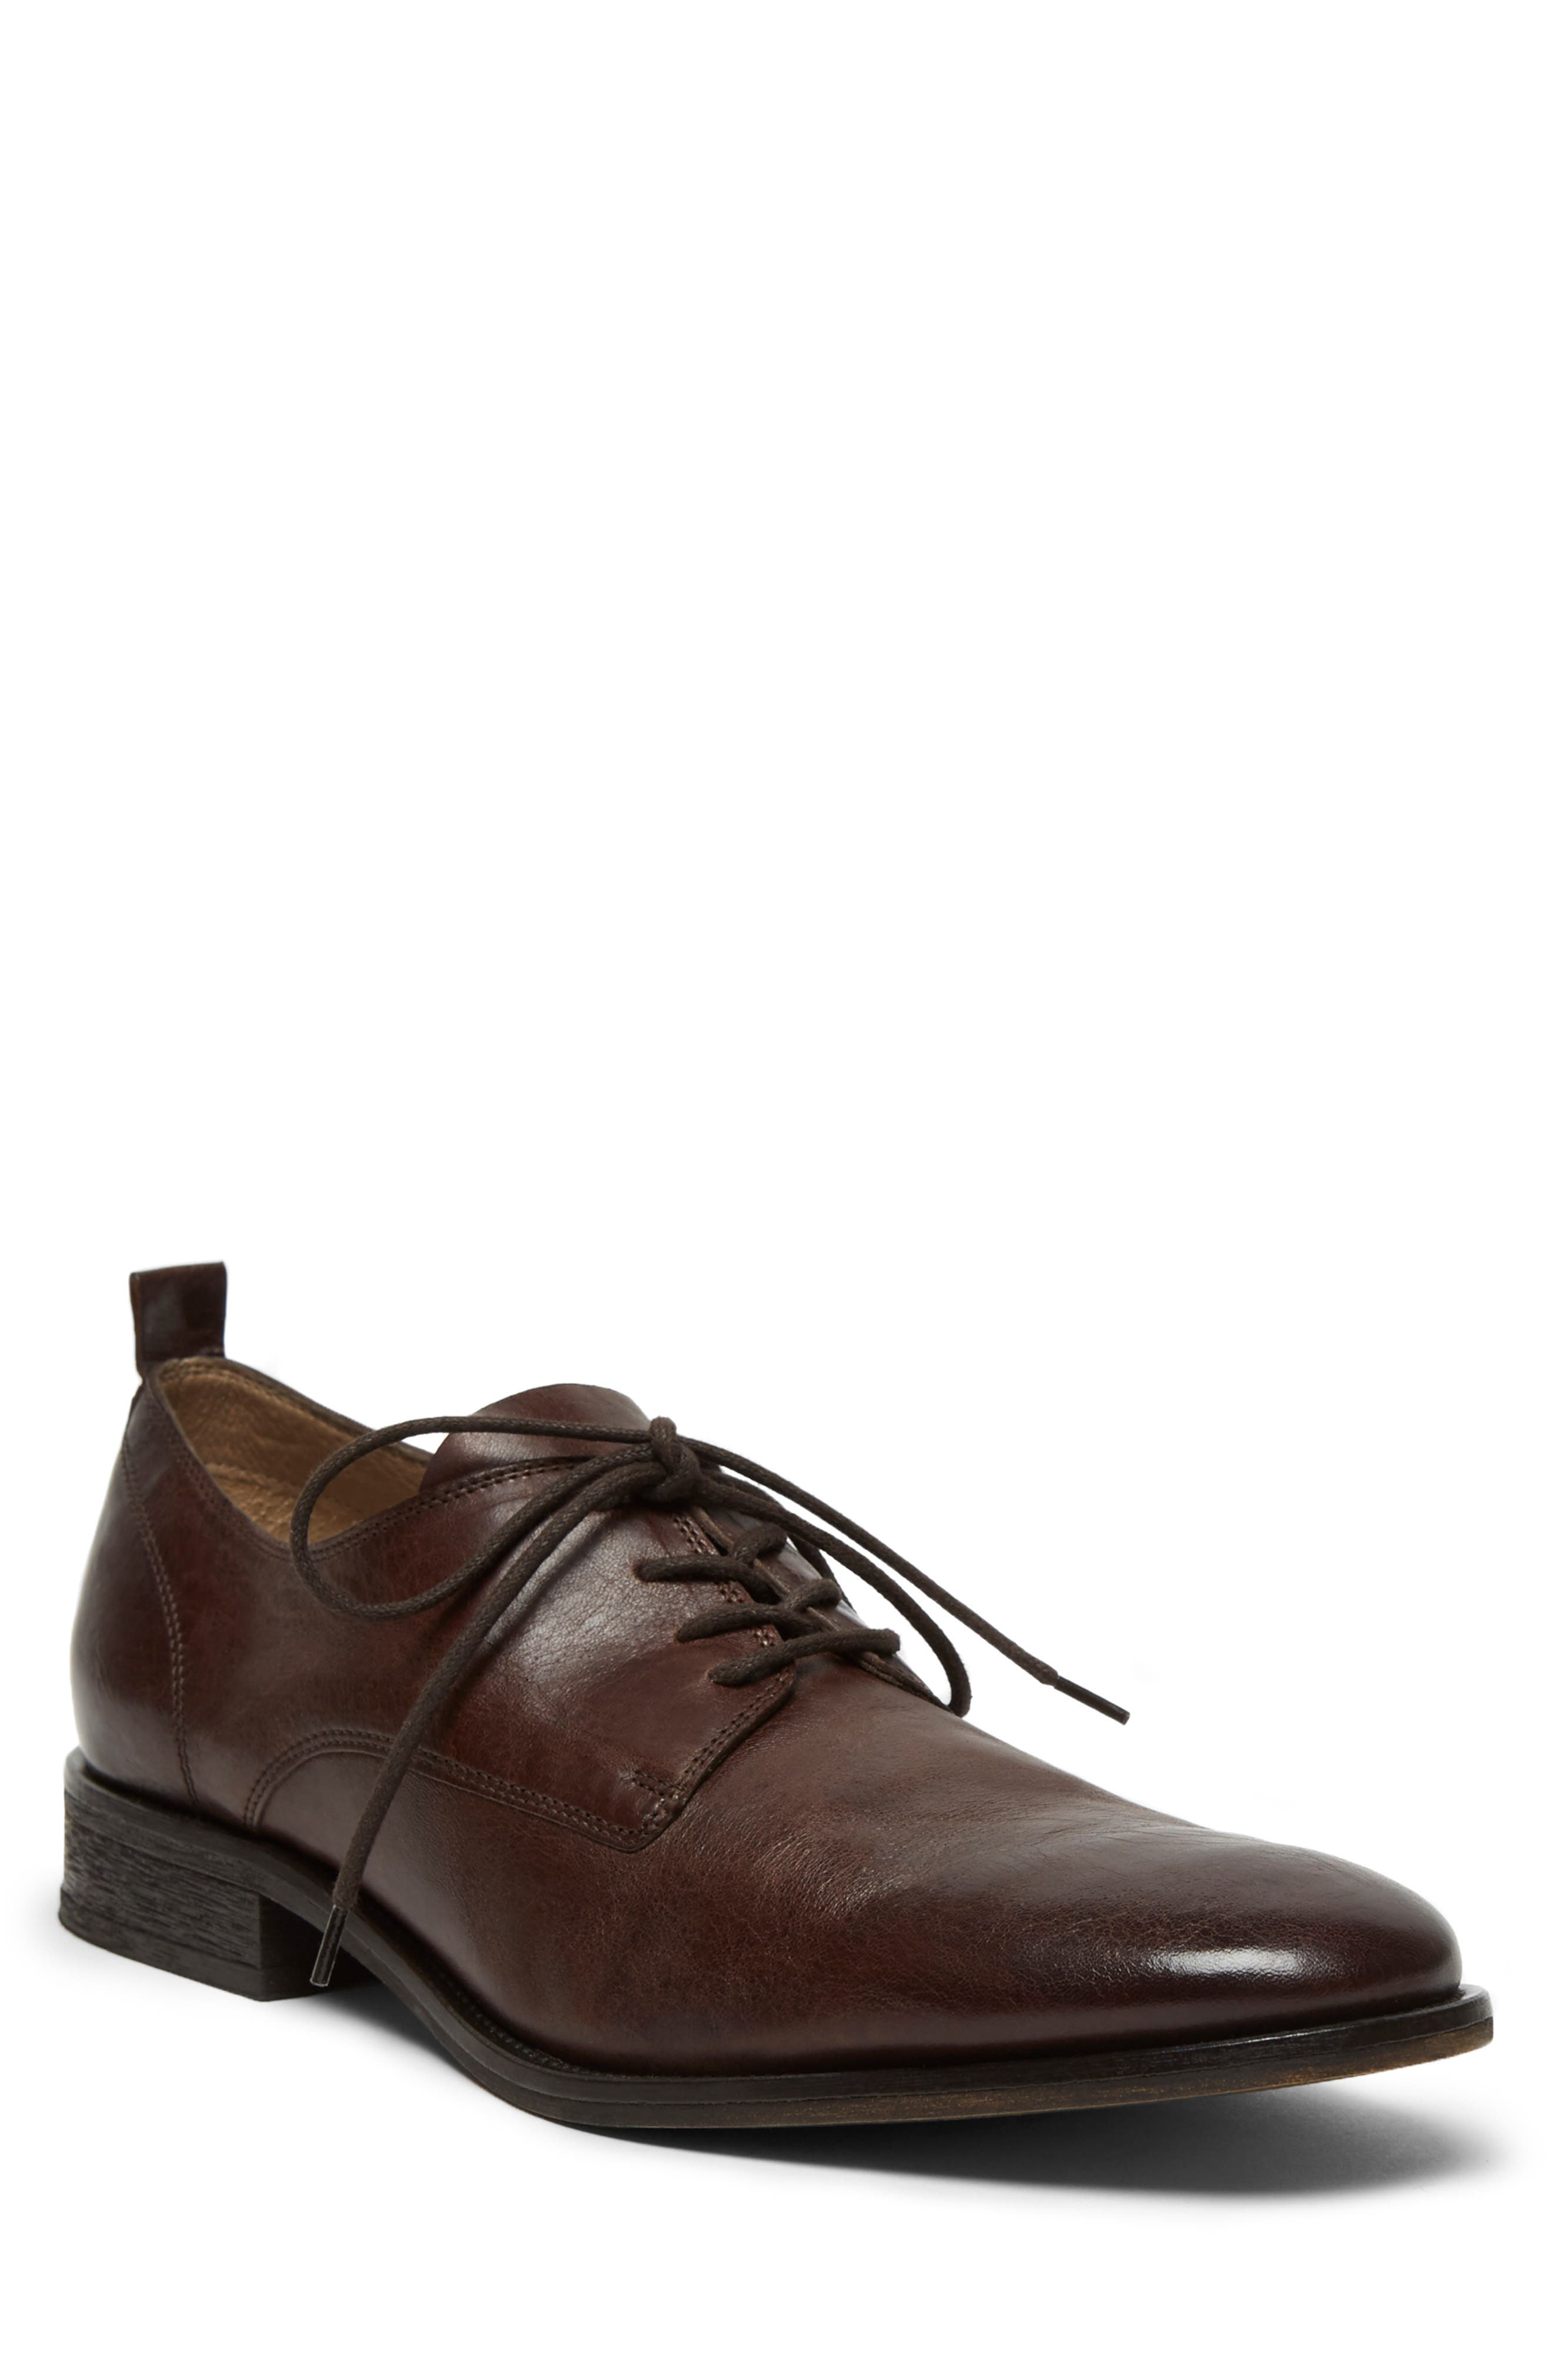 KENNETH COLE NEW YORK, Indio Plain Toe Derby, Main thumbnail 1, color, BROWN LEATHER